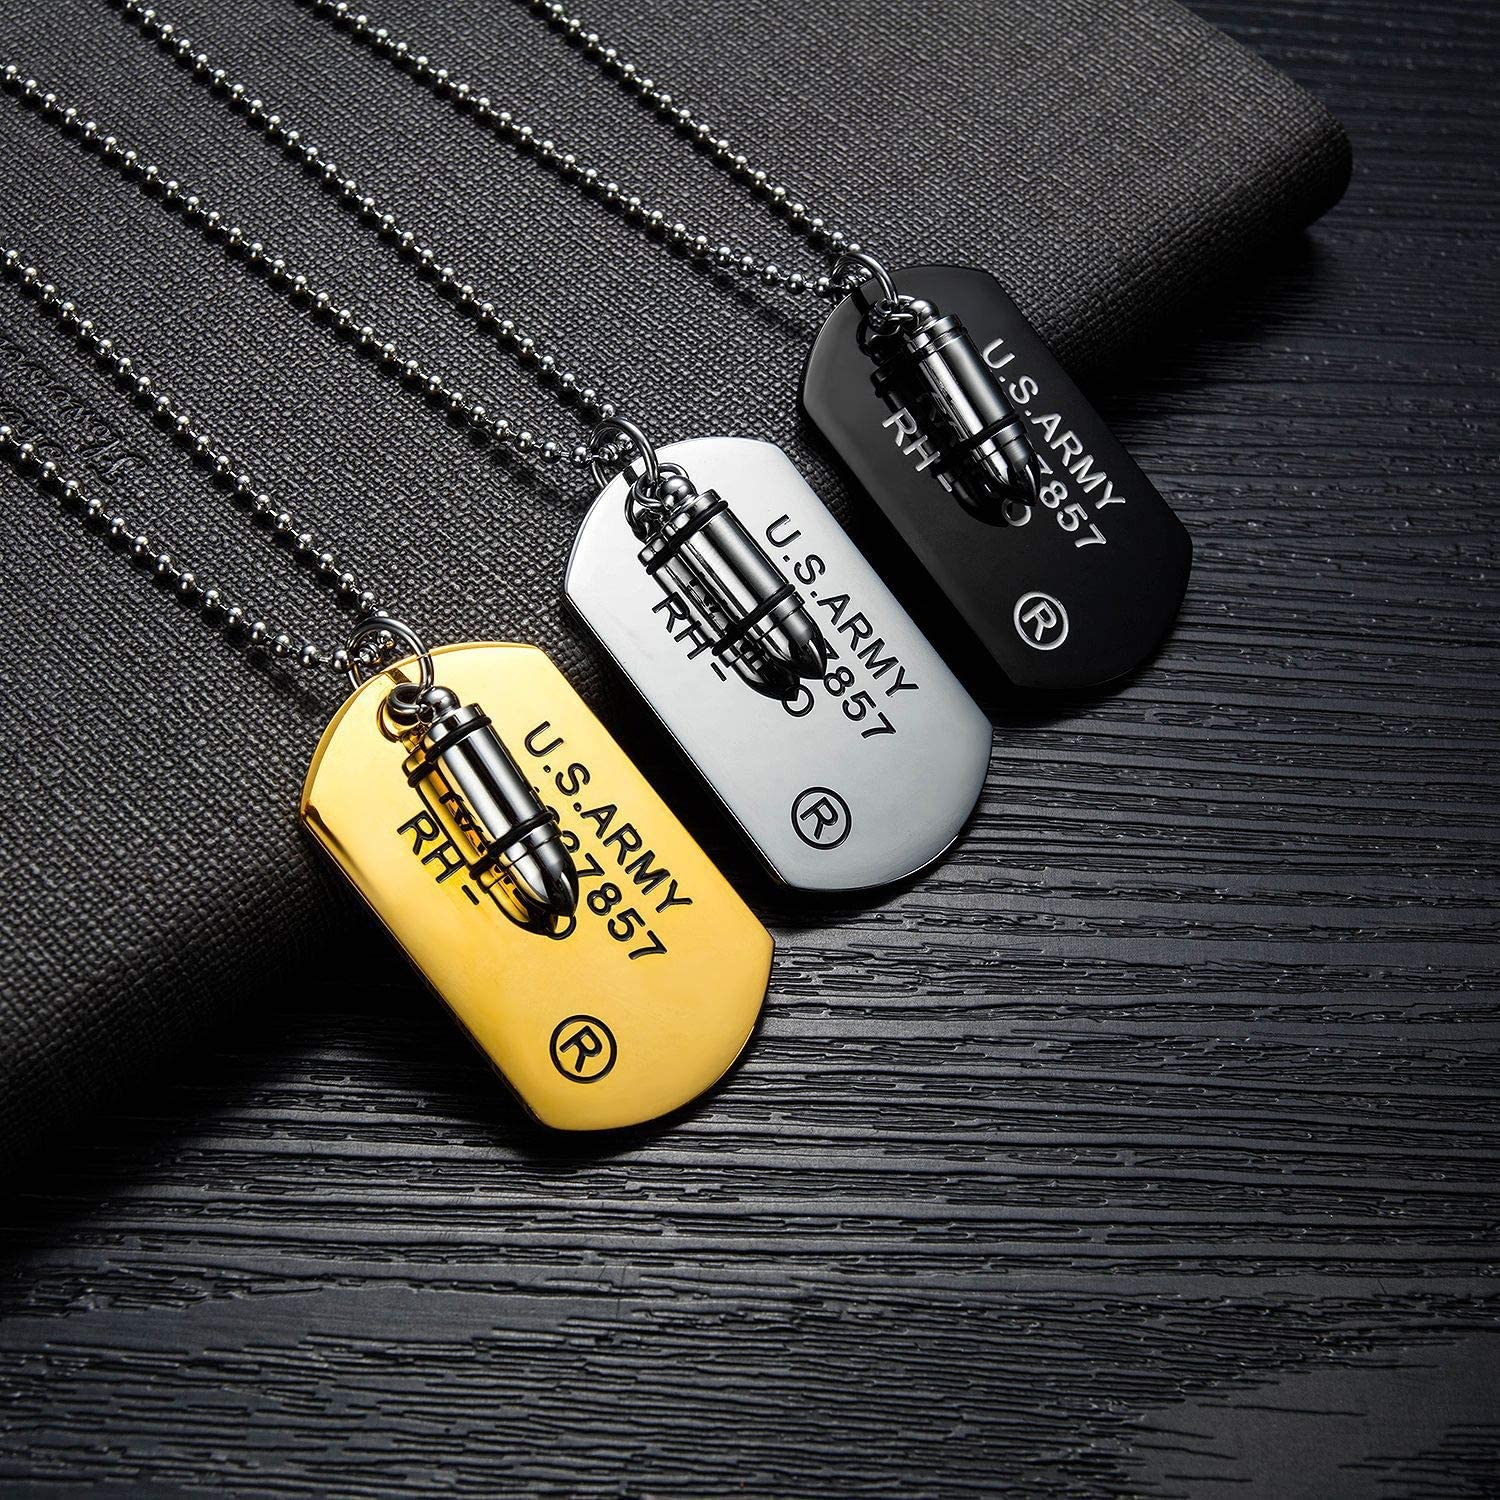 Hip Hop Rock Style Stunning Gifts for Him,21.65 Inch Chain Fashion Personality Bullet Pendant N/·XHXL Mens Stainless Steel Bullet Pendant Necklace